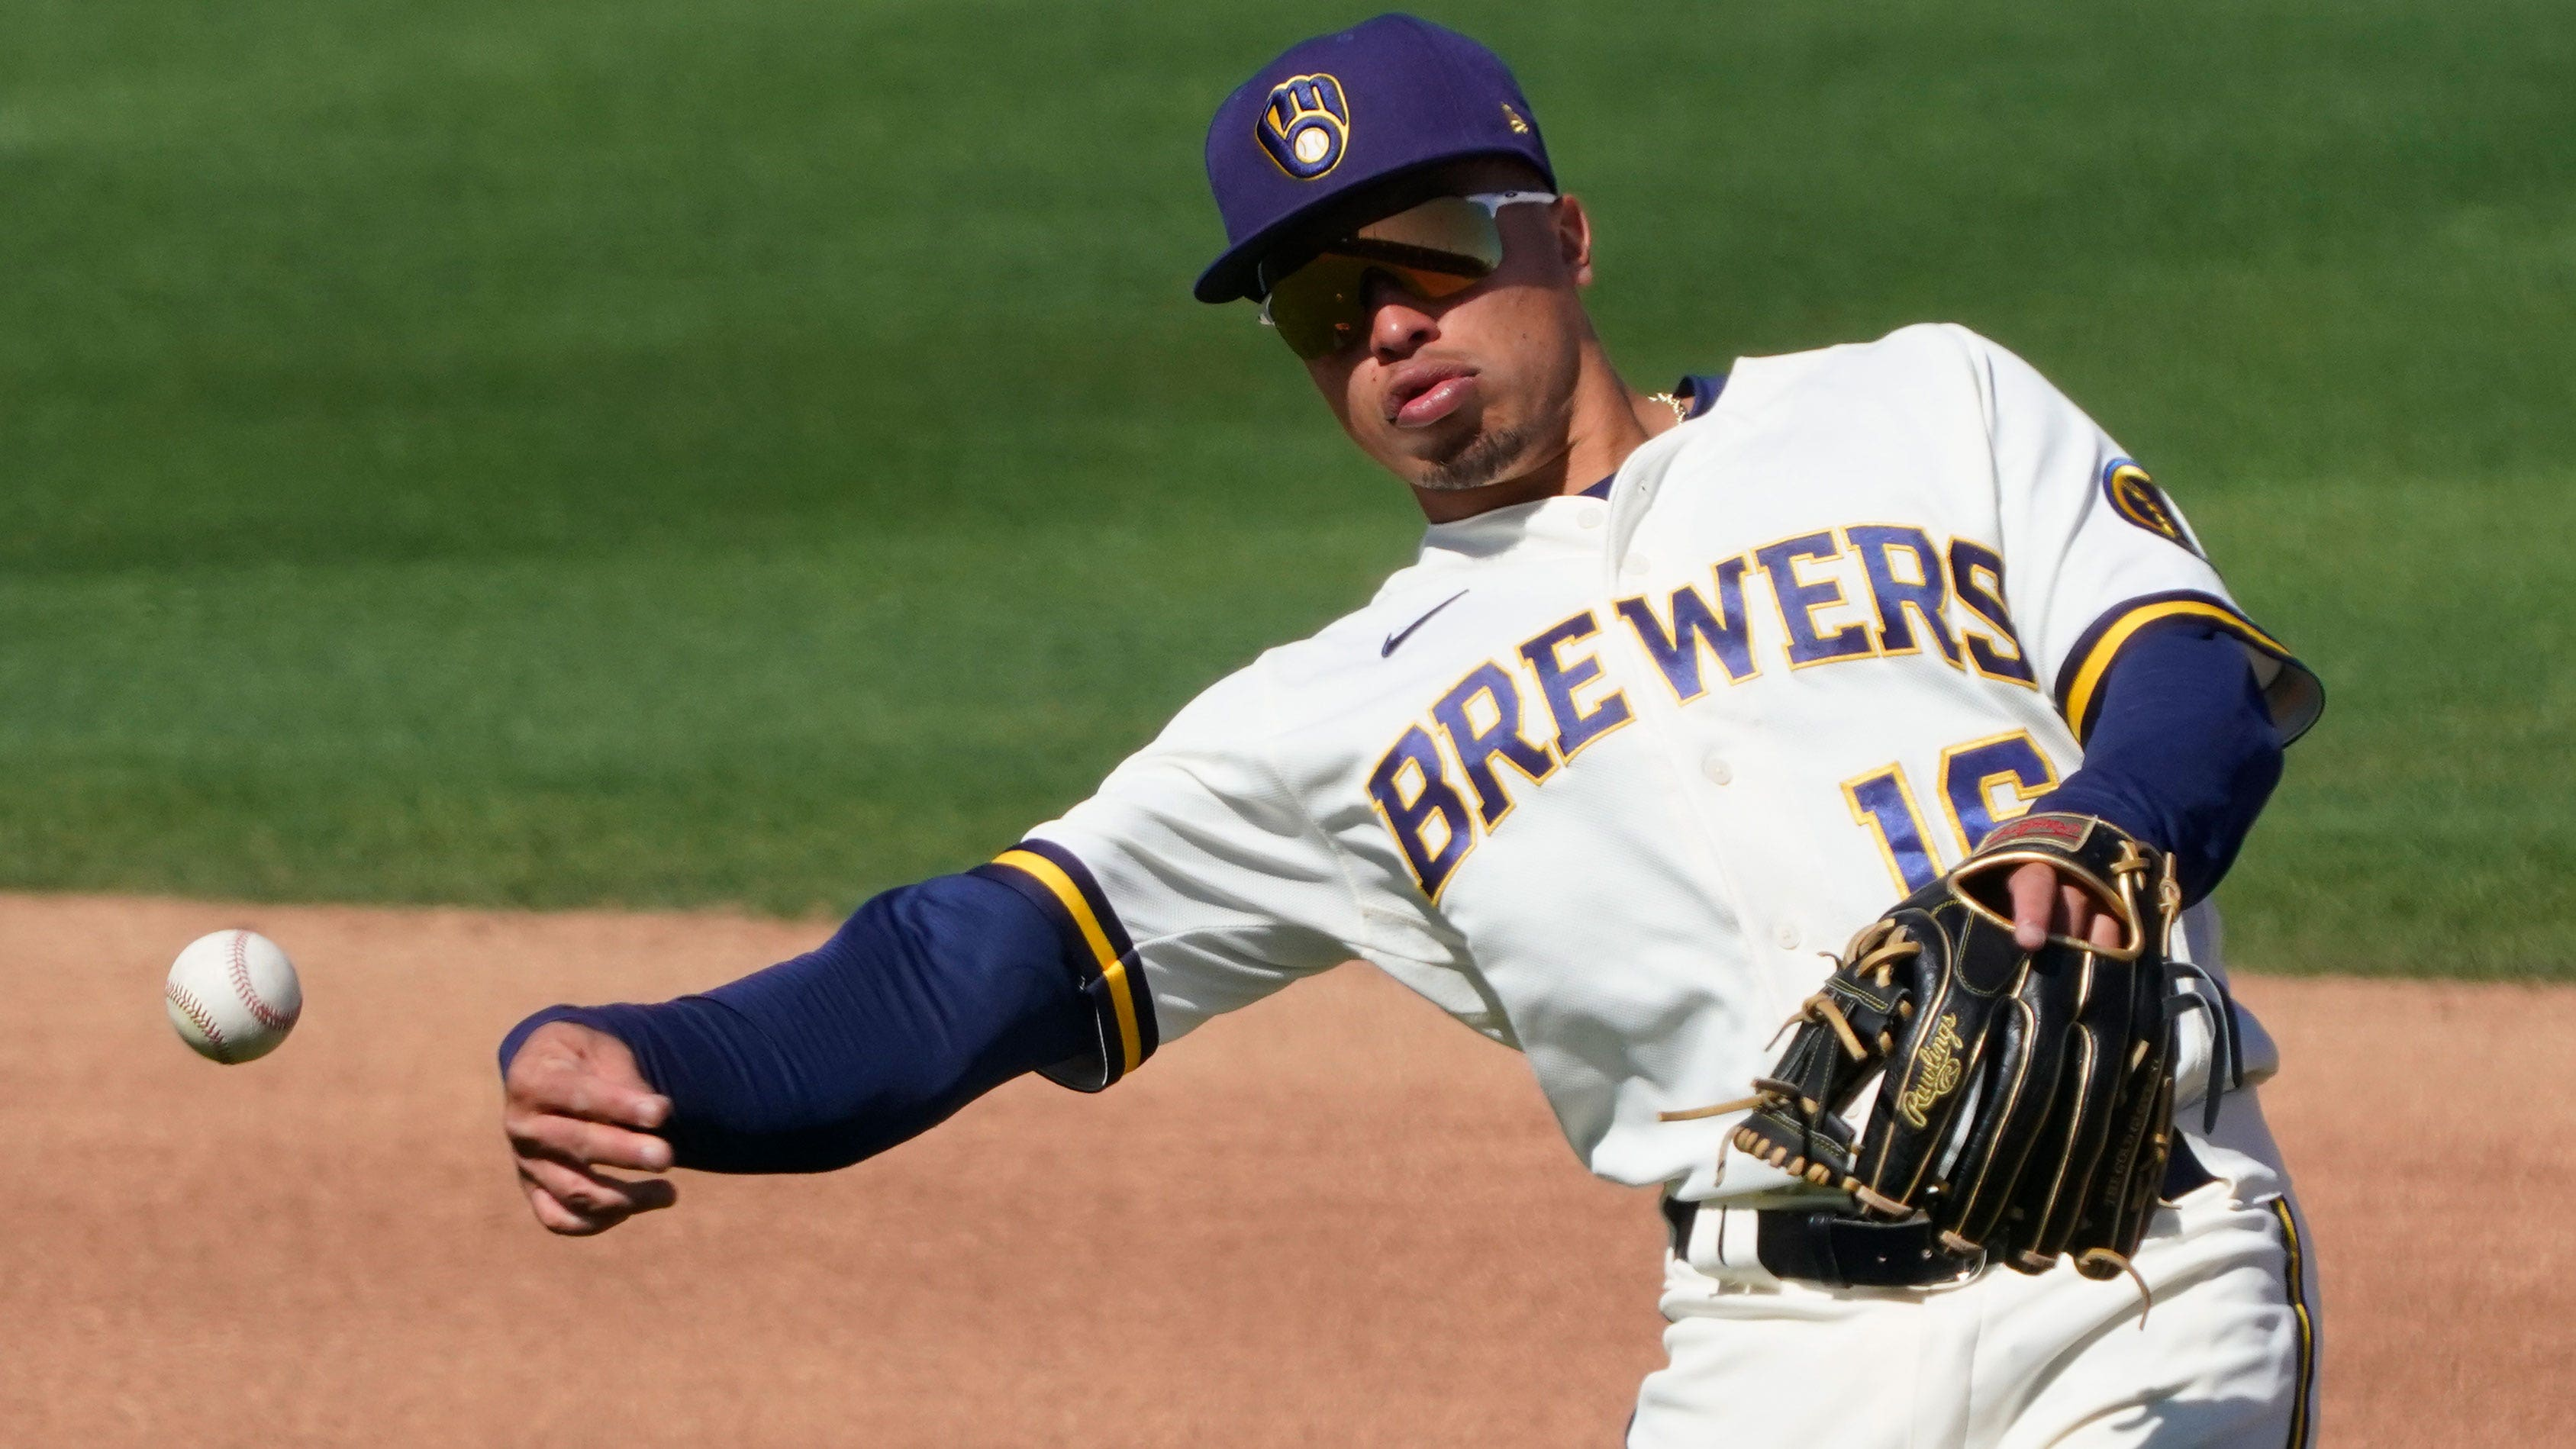 Newcomers Wong, Bradley add golden touch to Brewers defense   FOX Sports